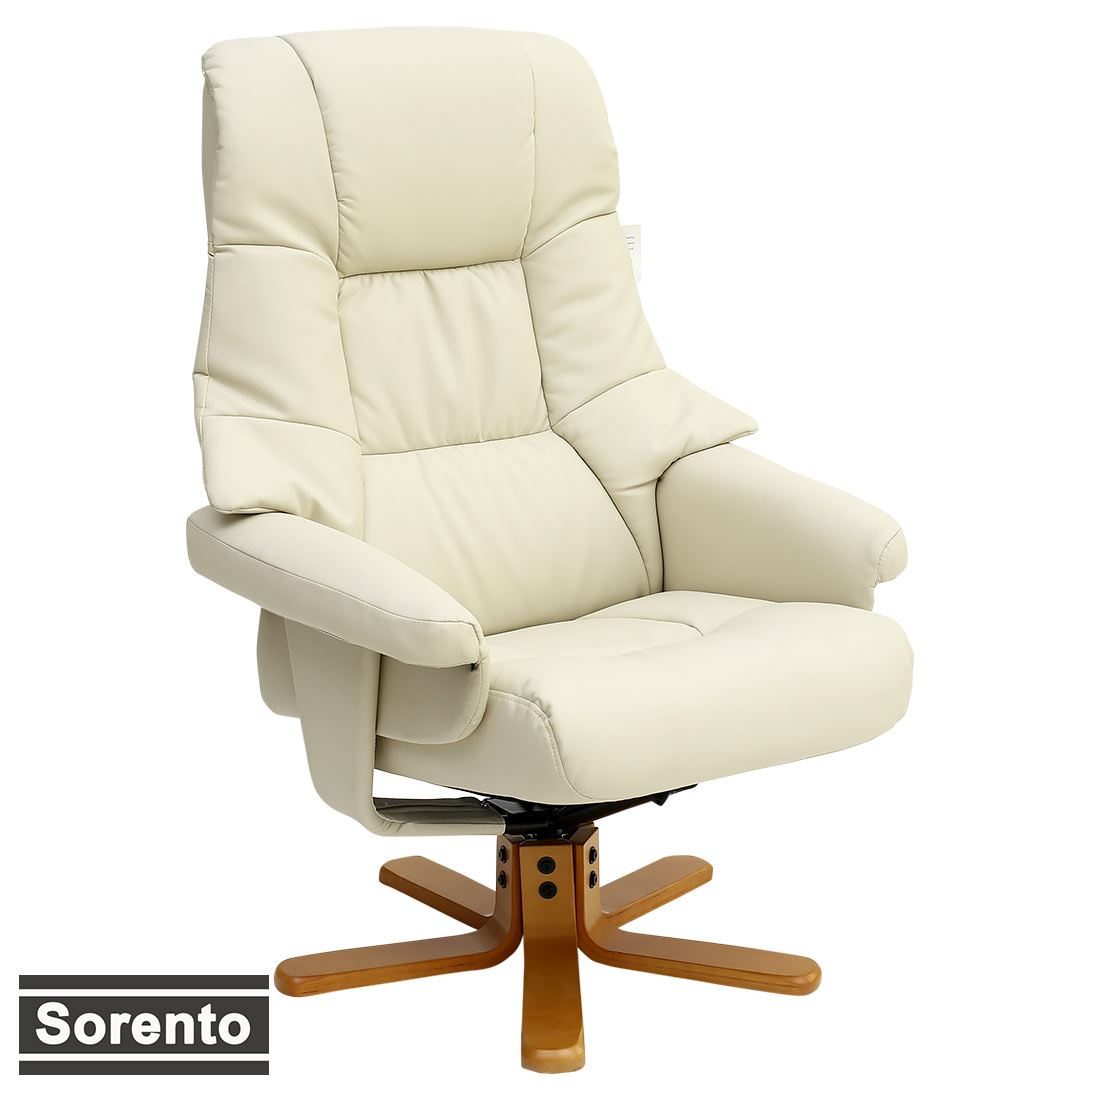 Real Leather Recliner Chairs Sorento Real Leather Cream Swivel Recliner Chair W Foot